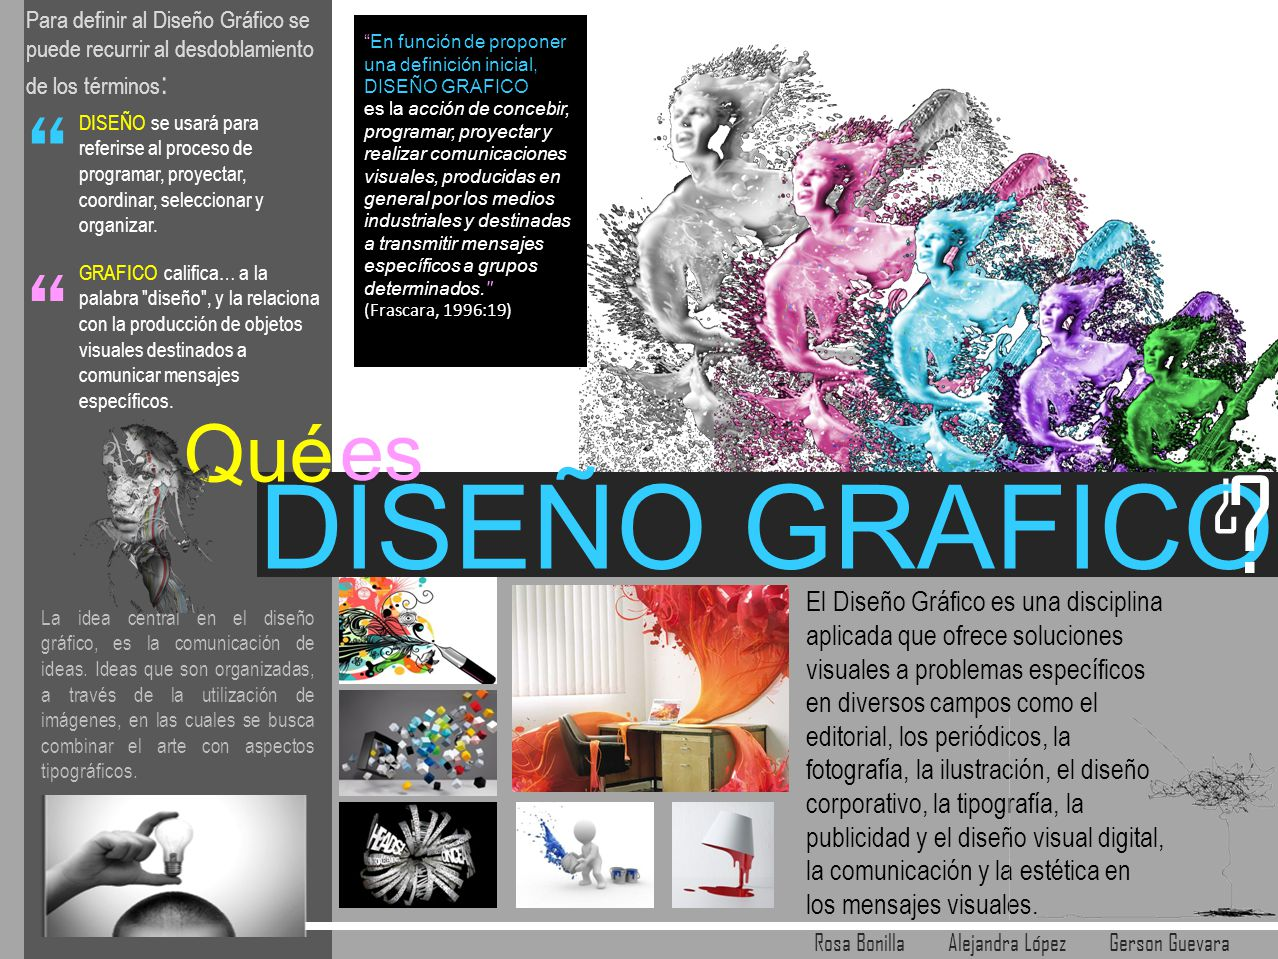 Dise o grafico es qu ppt video online descargar for Que es diseno grafico